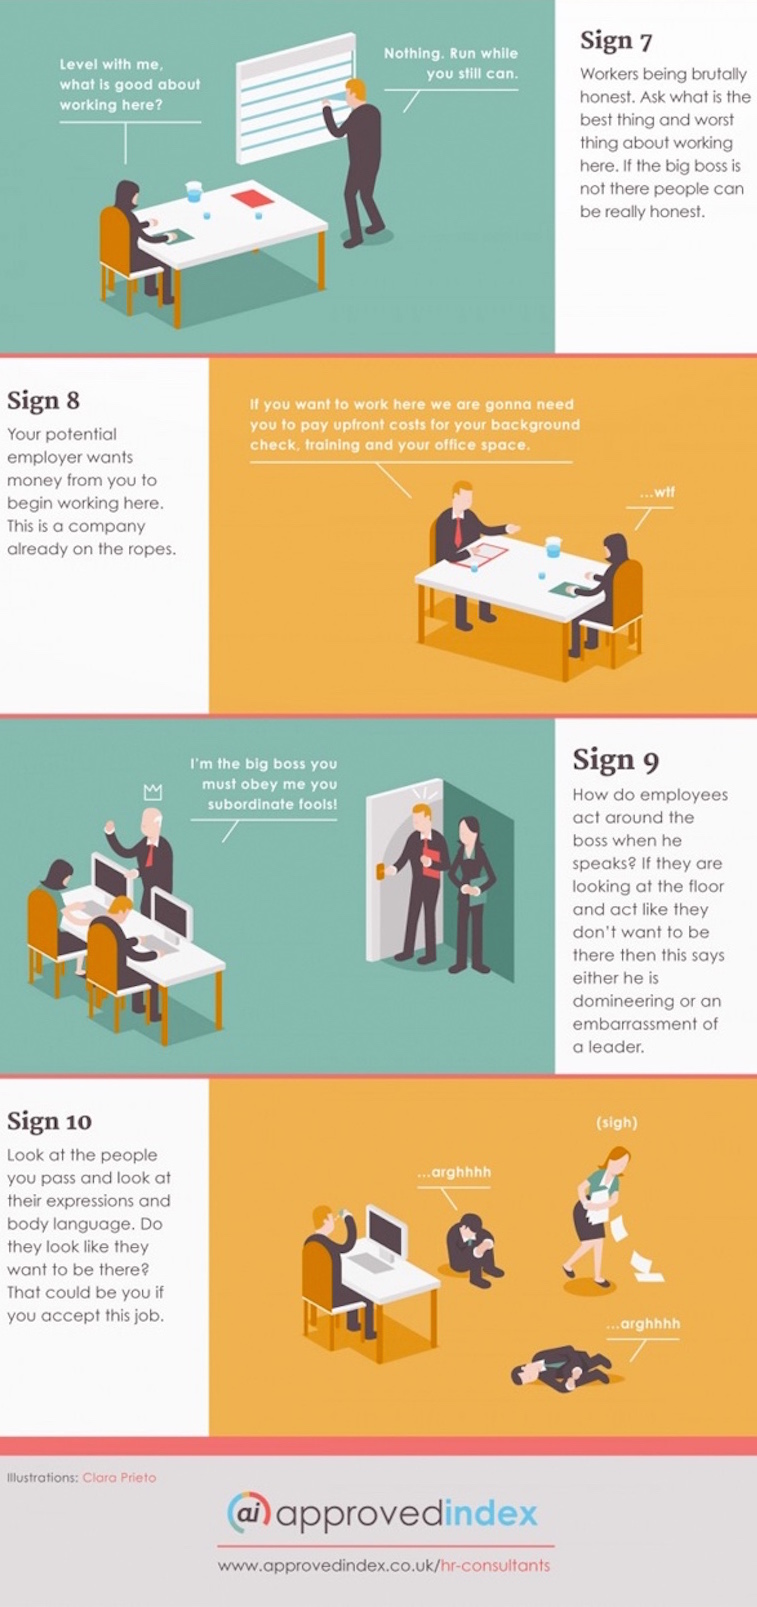 10 job interview red flags that should warn you to walk away approved index